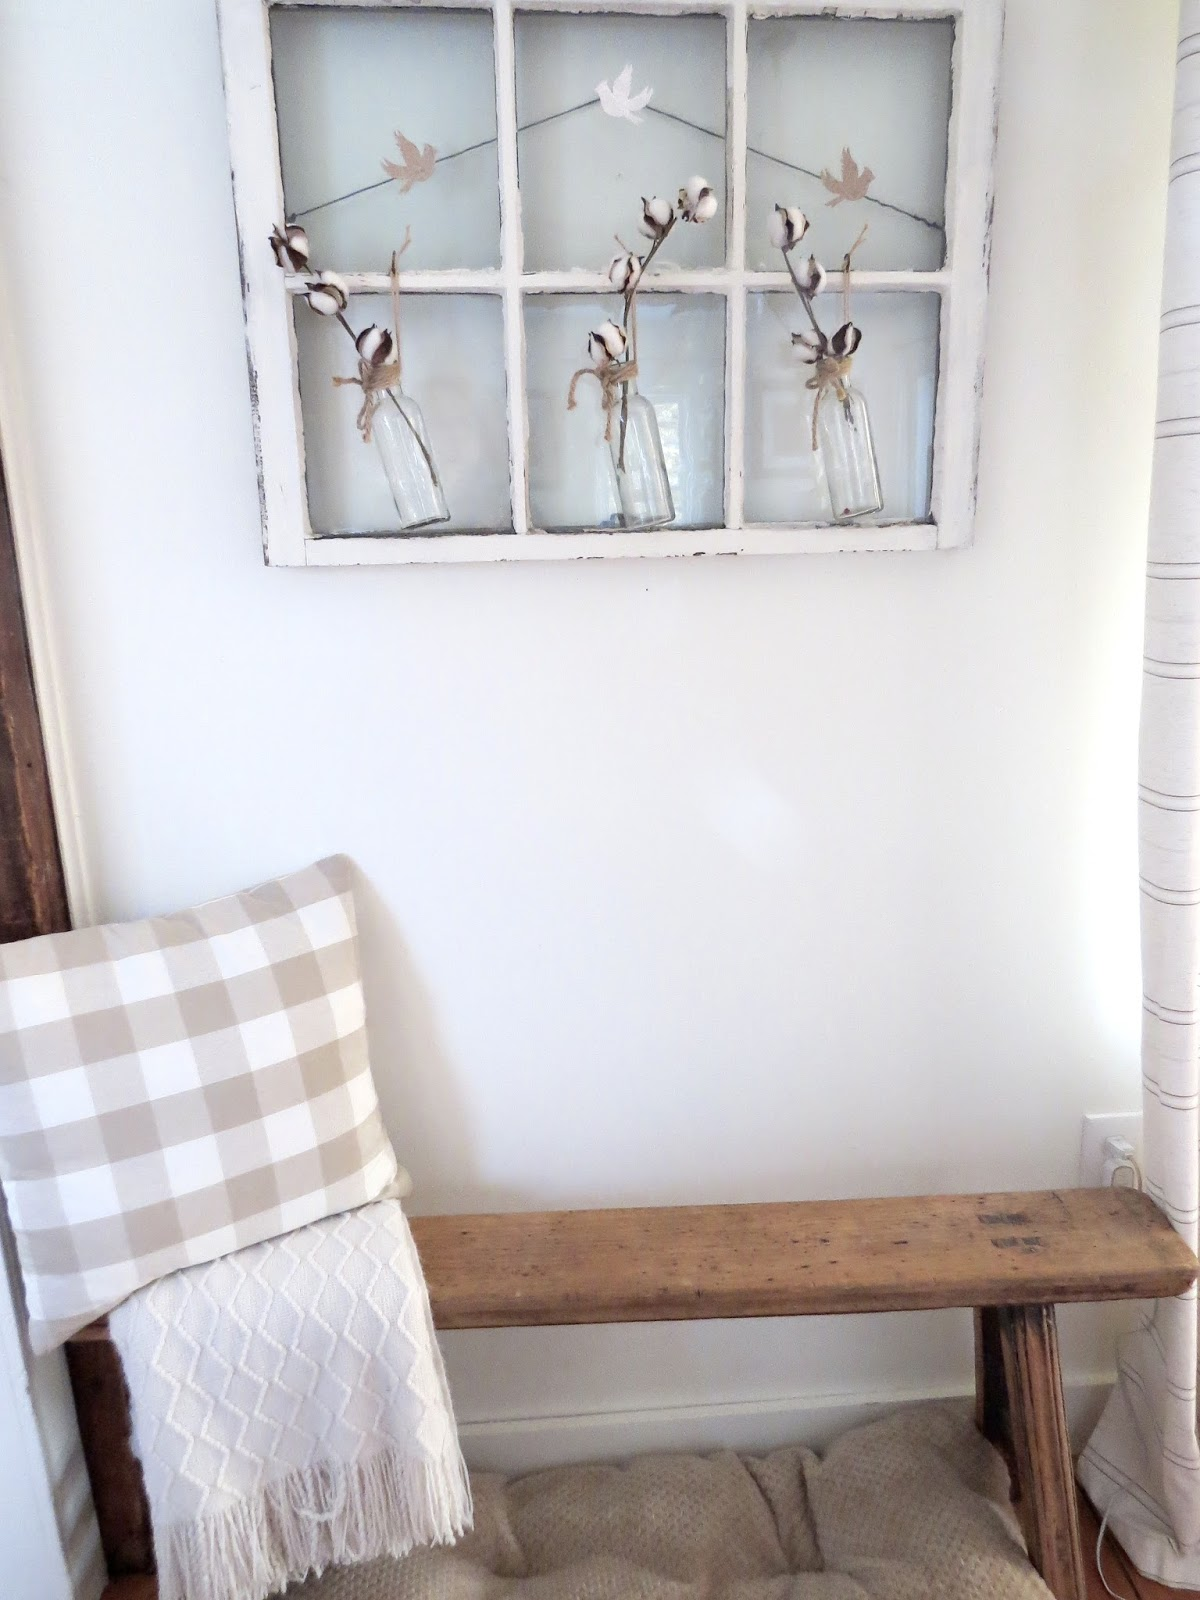 The Long Awaited Home: Decorating on a Dime - Old Window